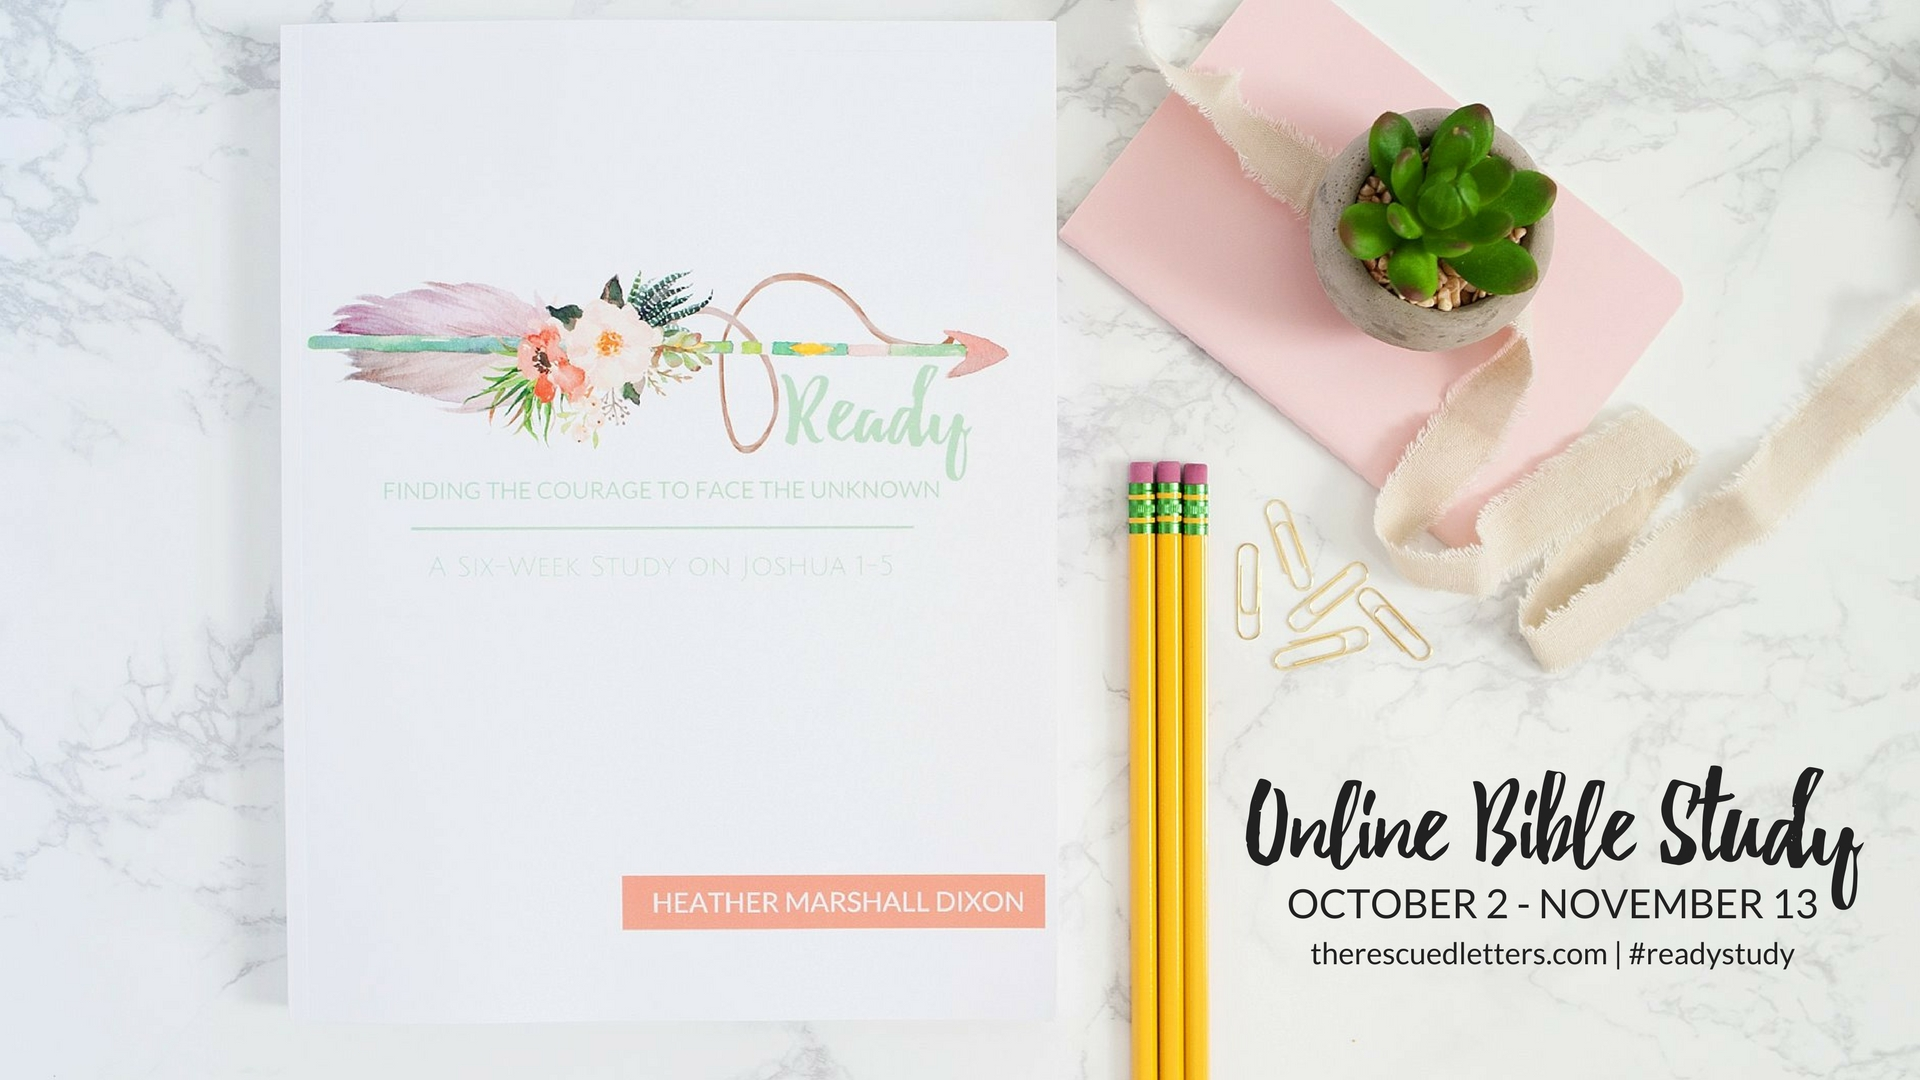 Ready Online Bible Study - www.therescuedletters.com